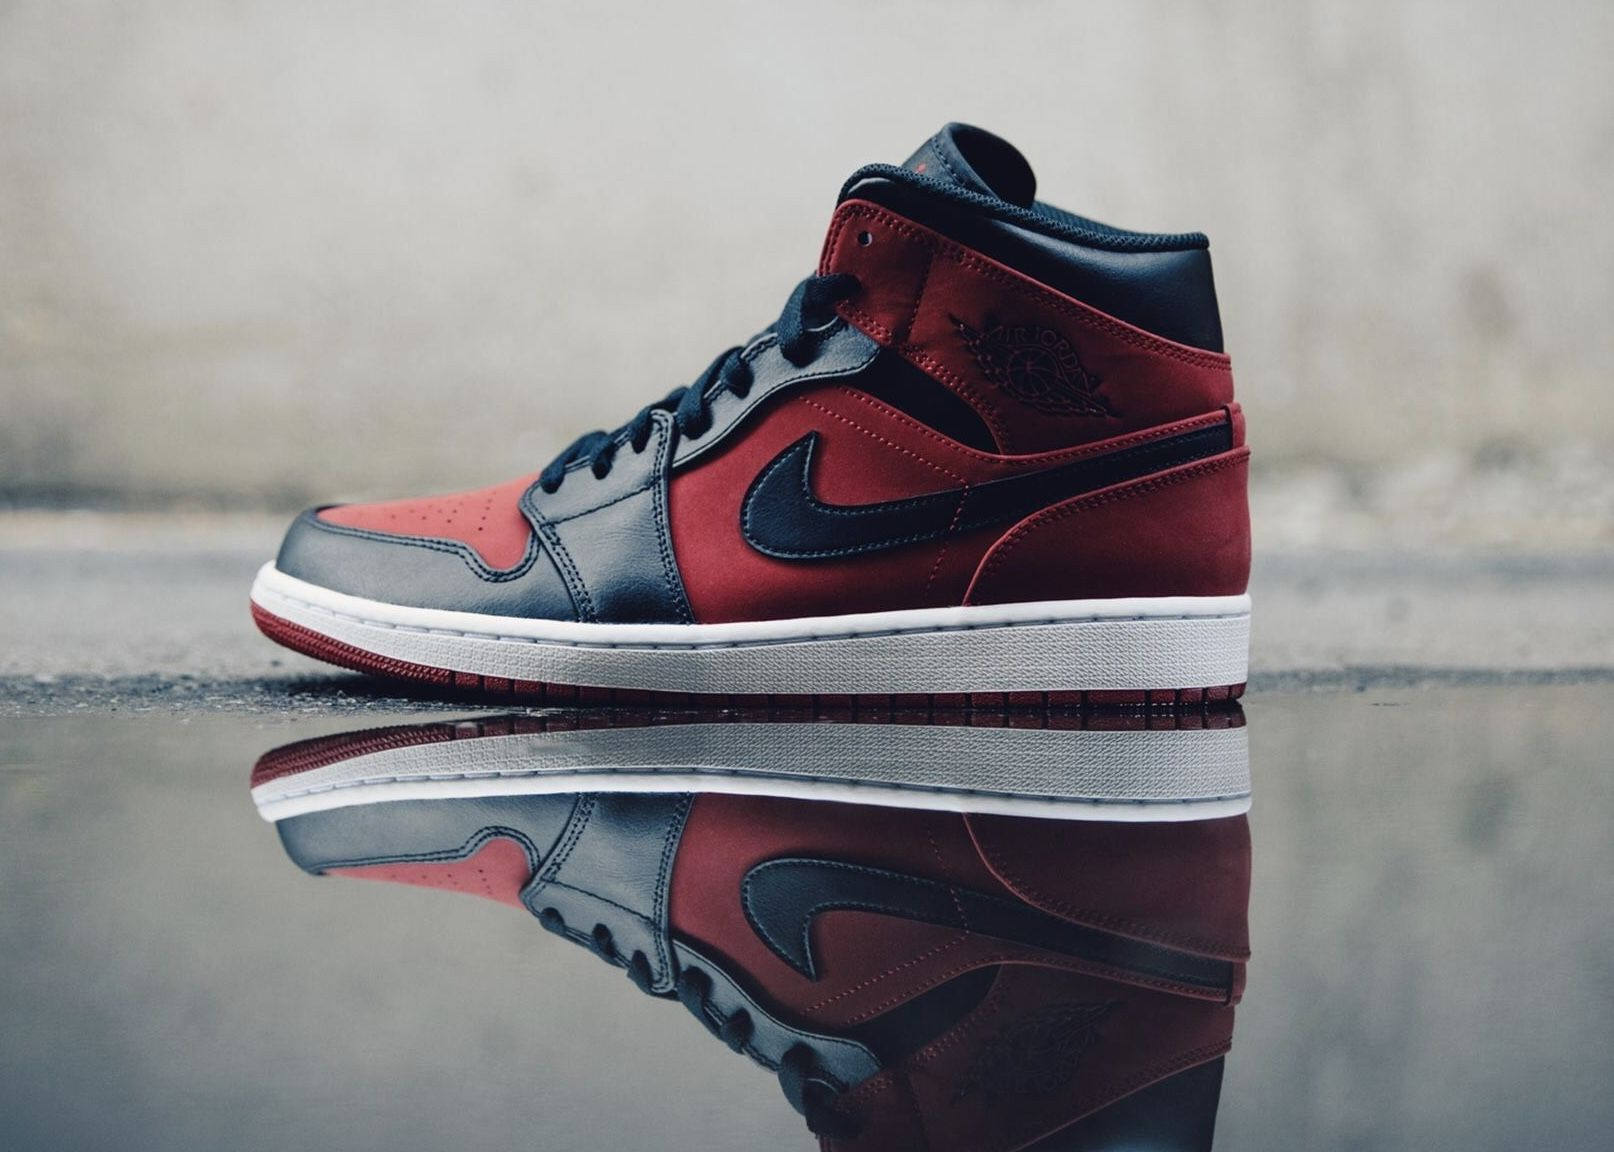 20d819d8e86606 ... official photos b3827 dbce1 Nike Air Jordan 1  factory price 93494  2eade END To Restock the Sean Wotherspoon x ...